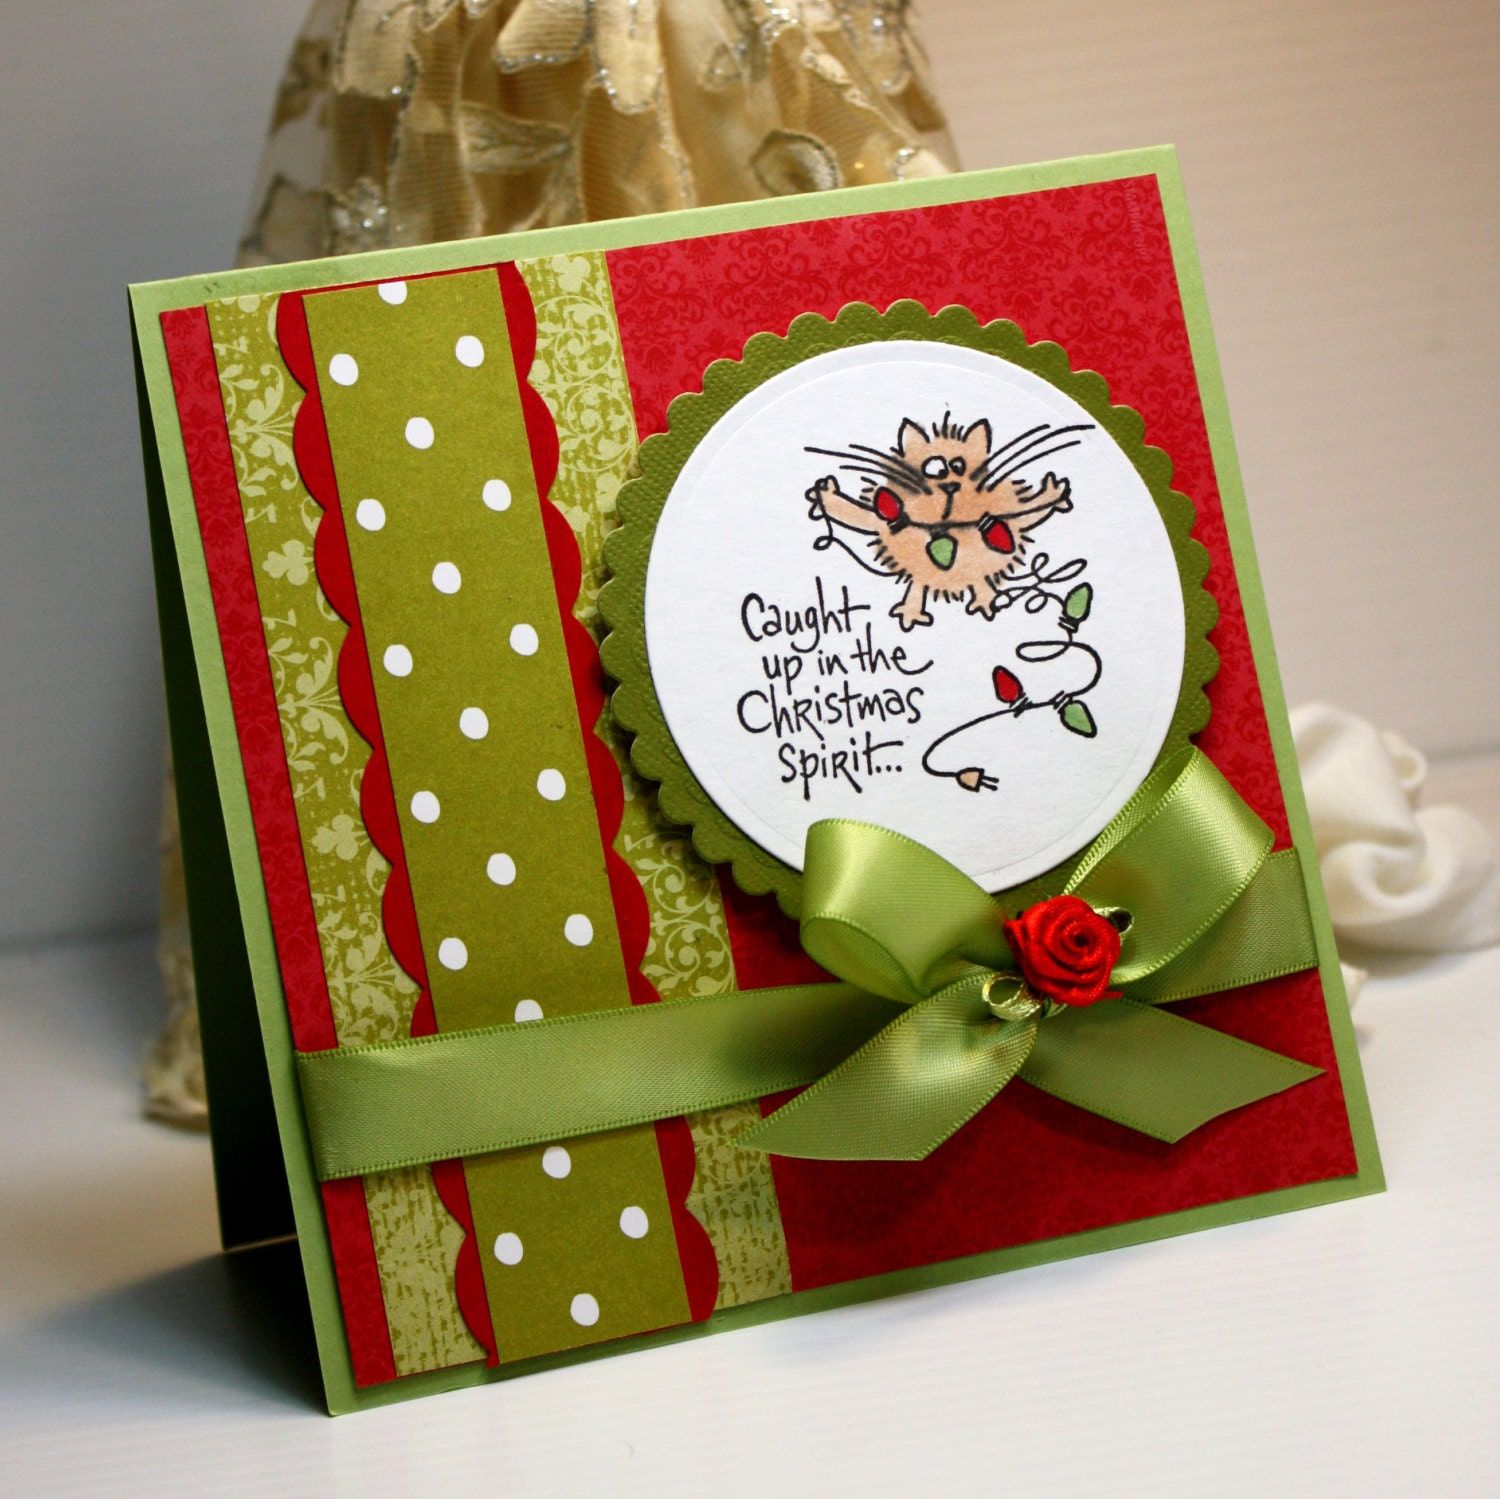 Christmas Card Handmade Greeting Card Caught Up In The